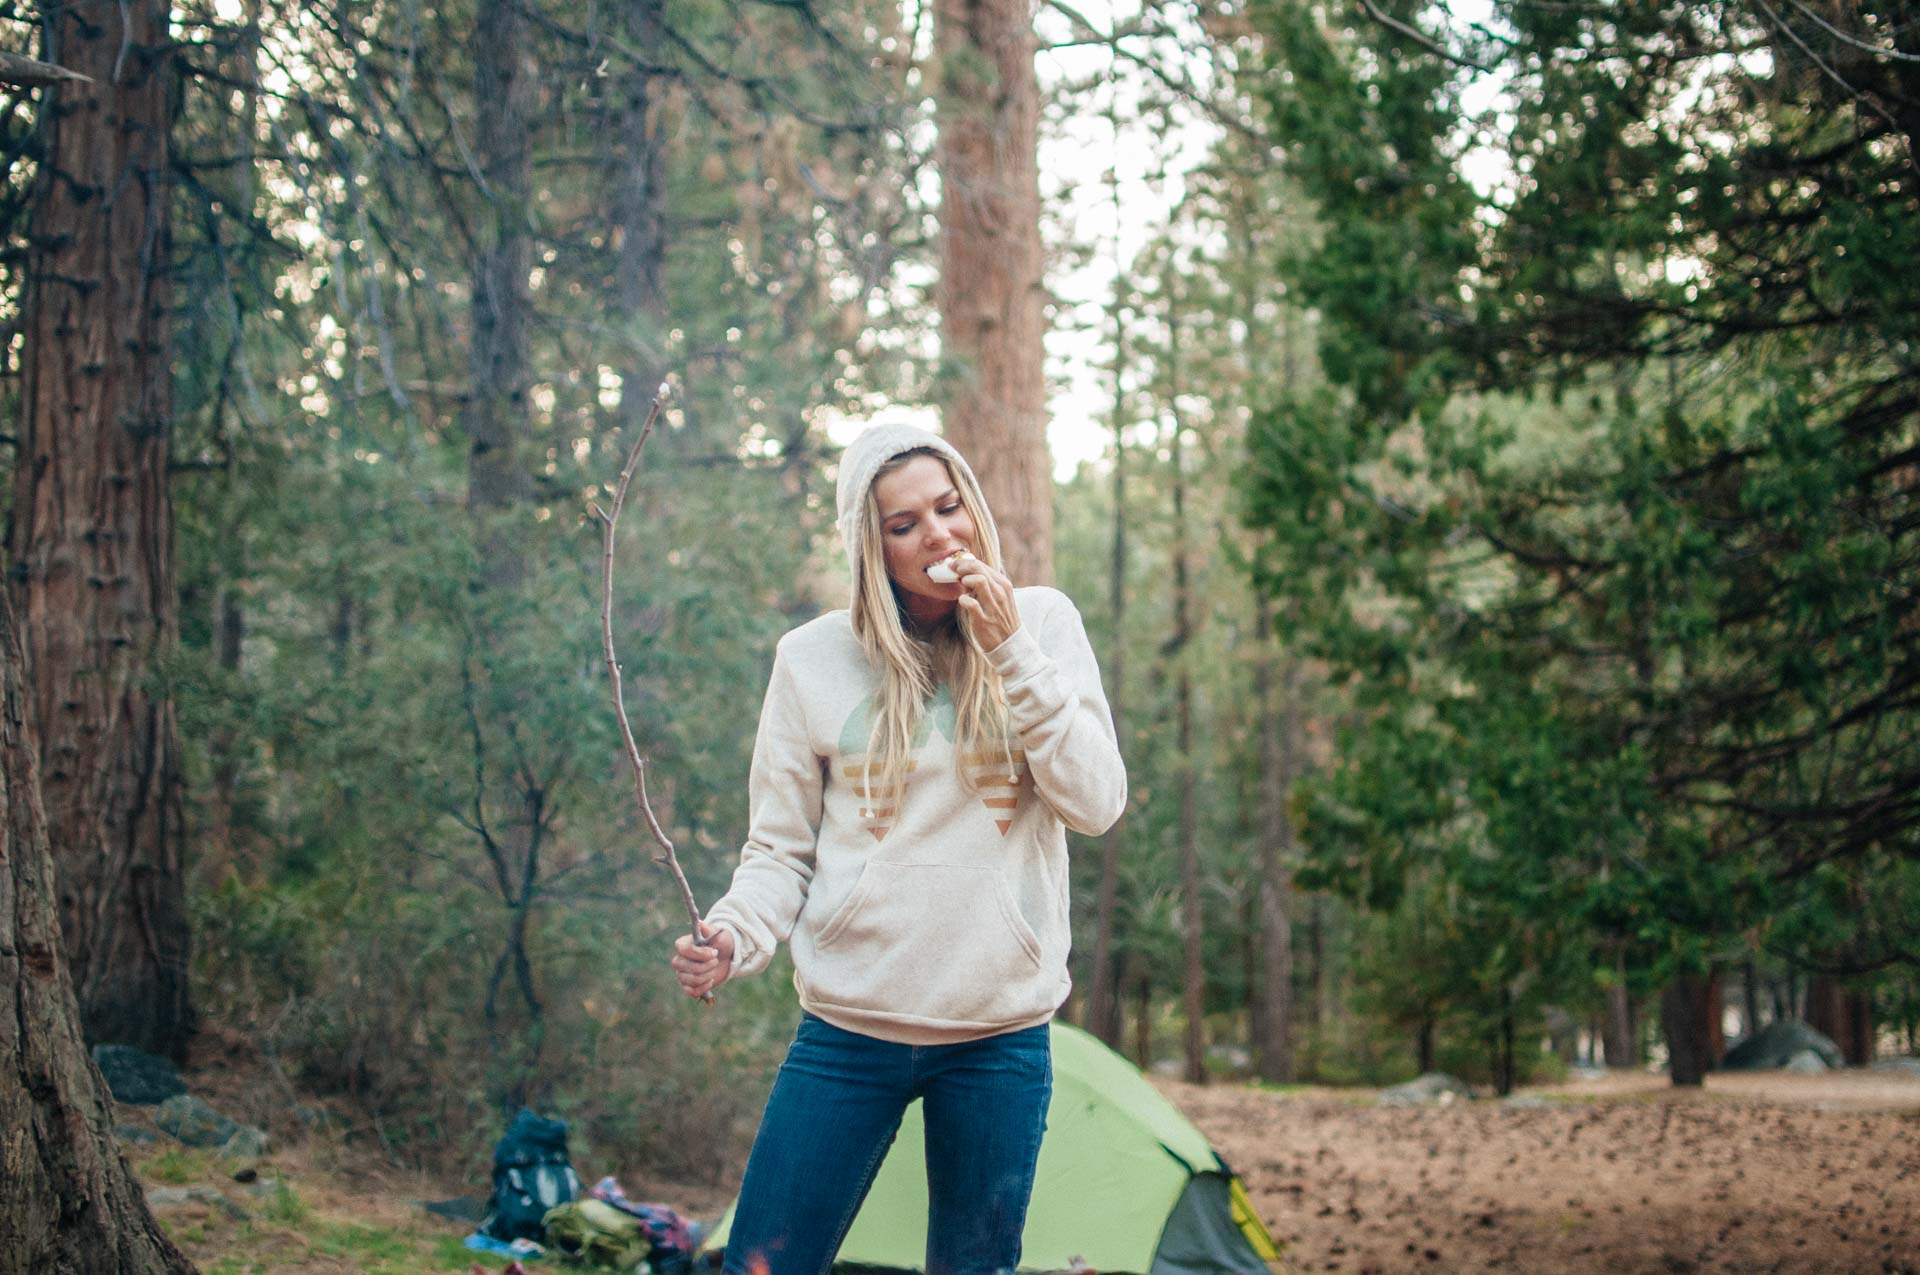 Camp Trend - Camp Style - Sierra Way-5 - web1920